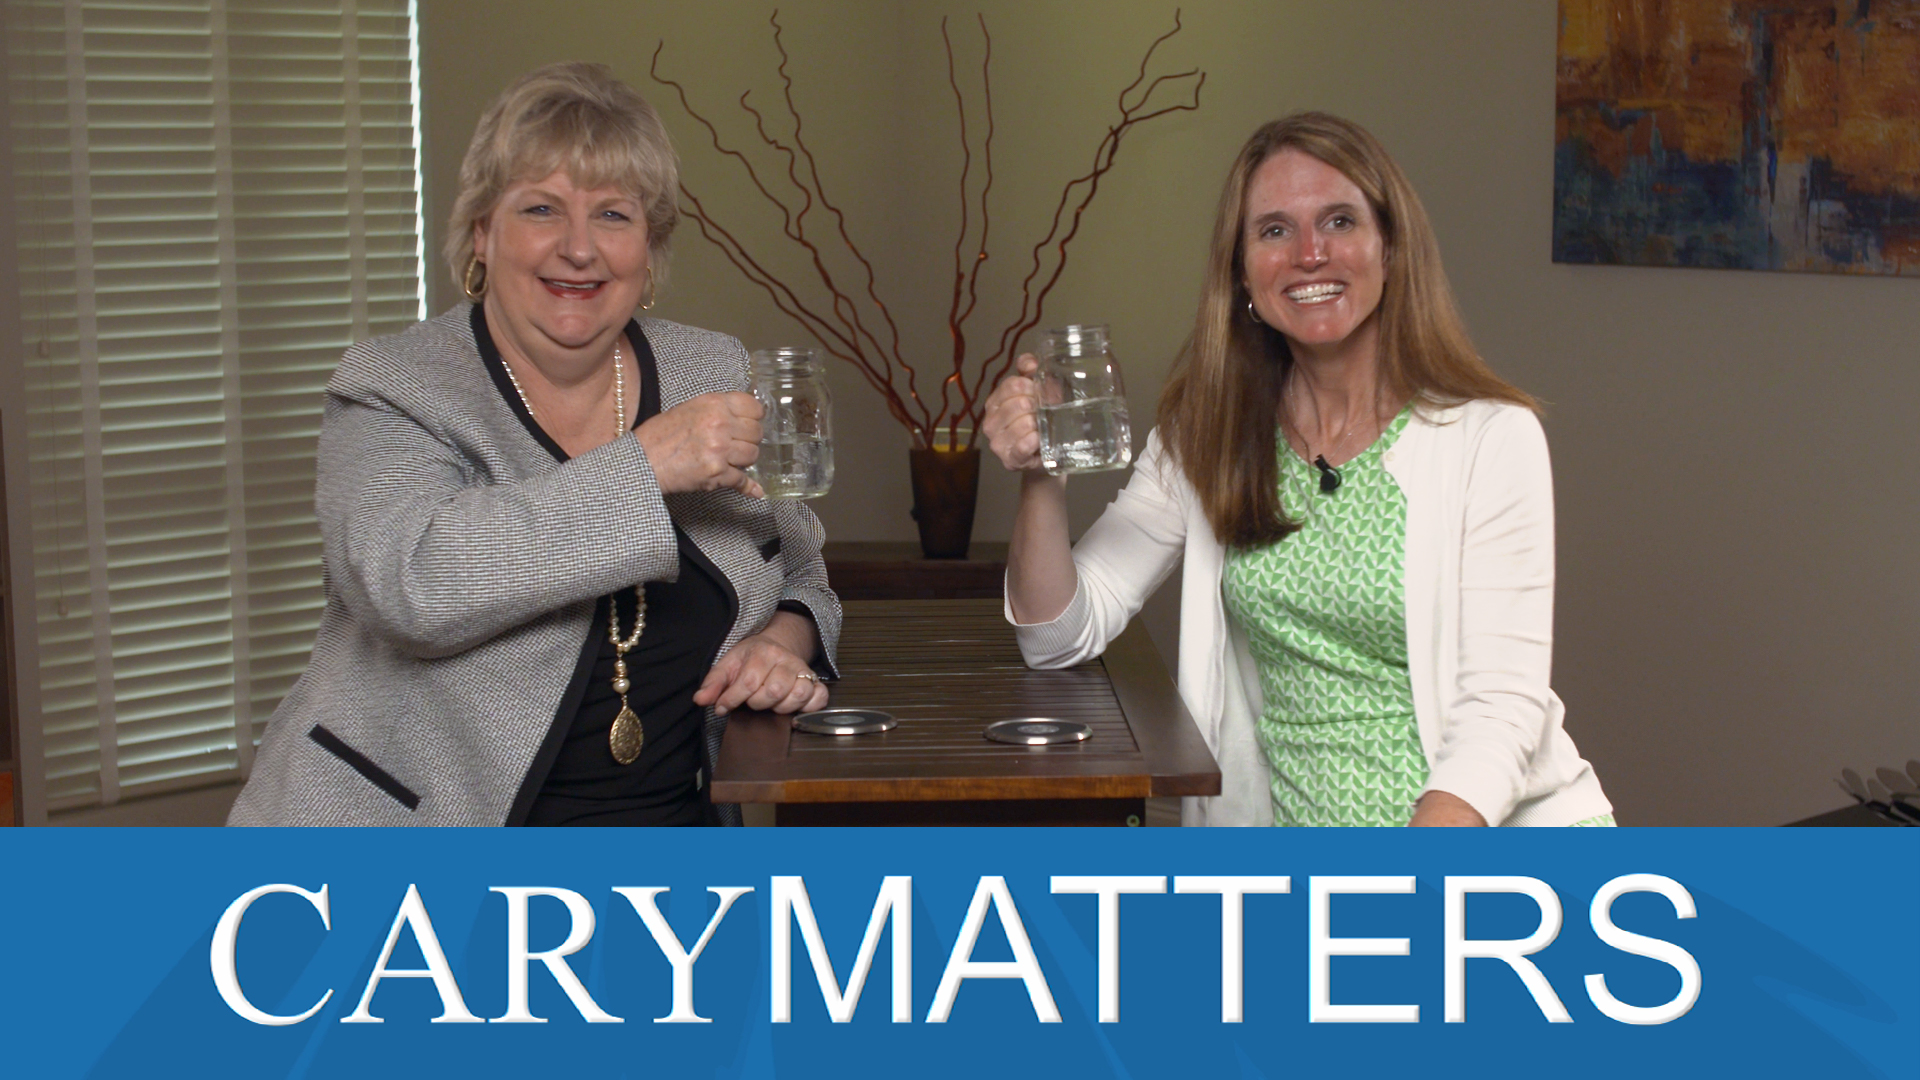 Jennifer Robinson and Karen Mills hosting Cary Matters